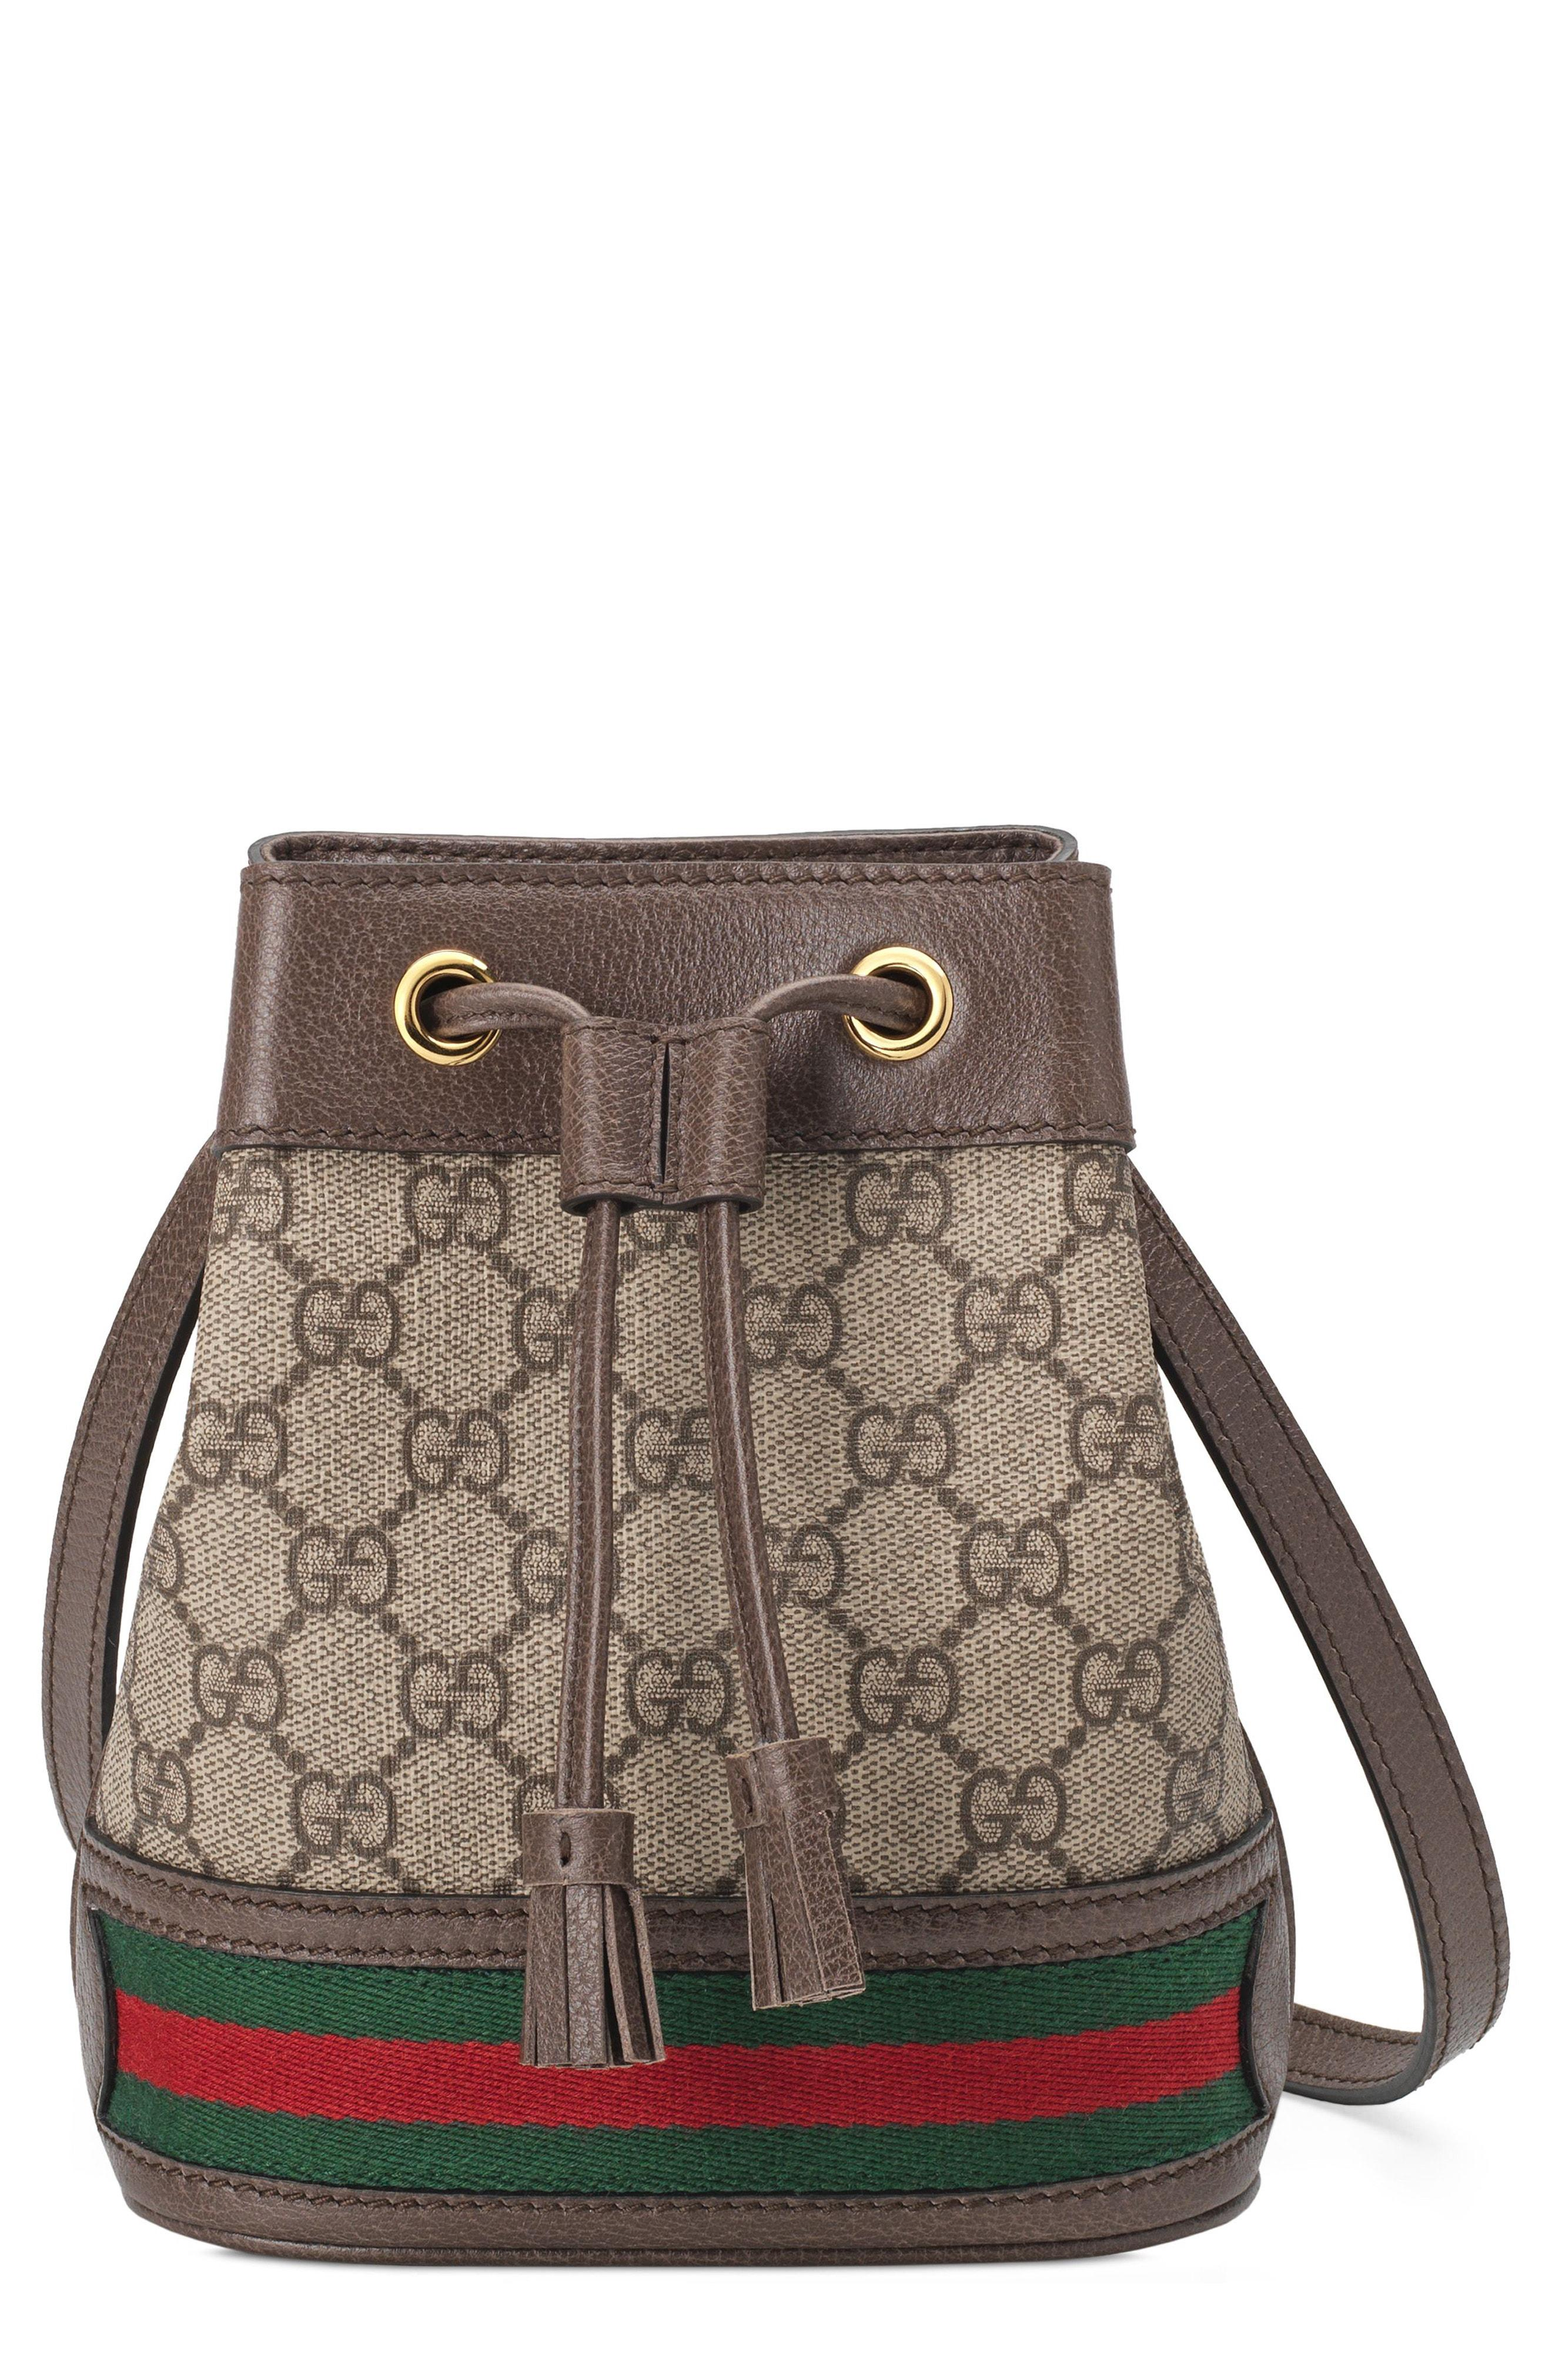 db89a9610ba Gucci. Women s Mini Ophidia Gg Supreme Bucket Bag